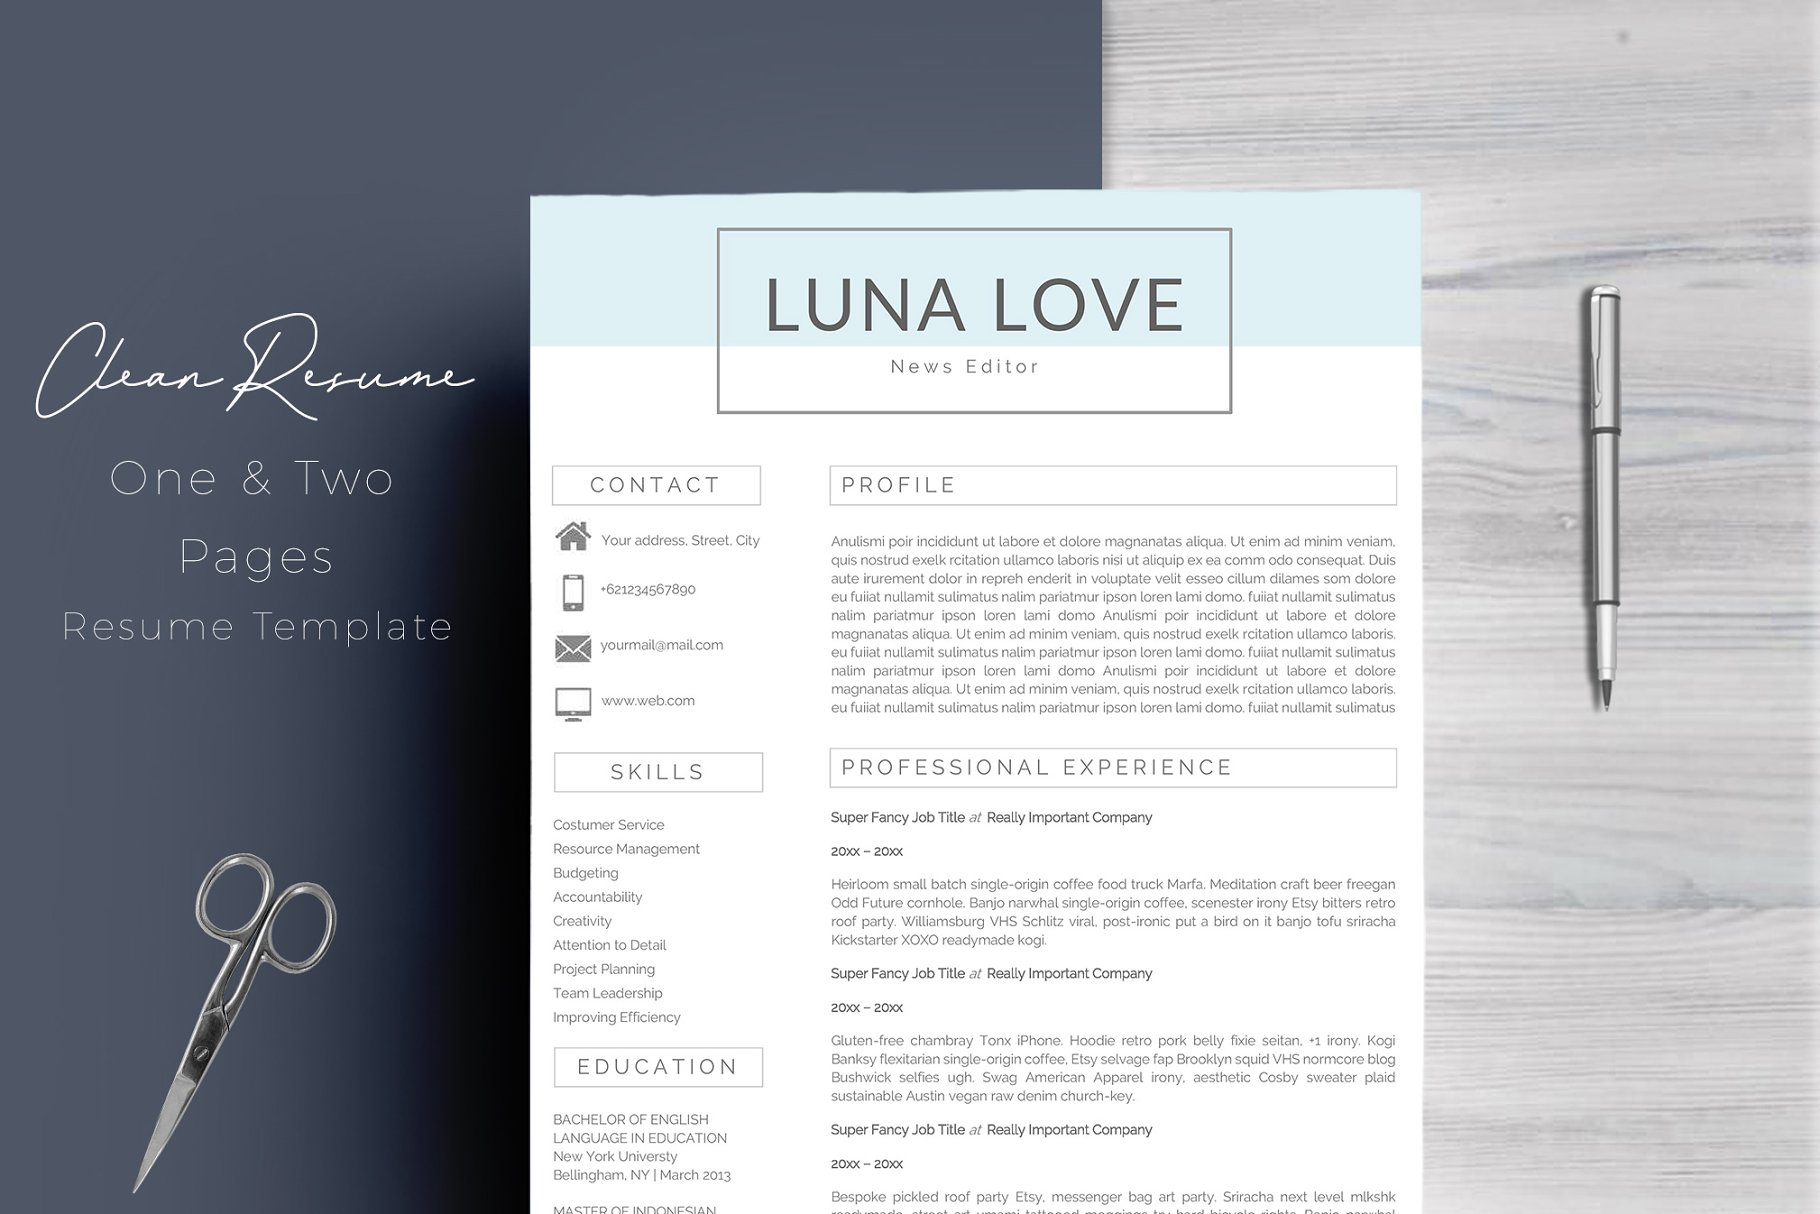 Clean Resume Template 4 Pages - Resume Templates | Creative Market Pro